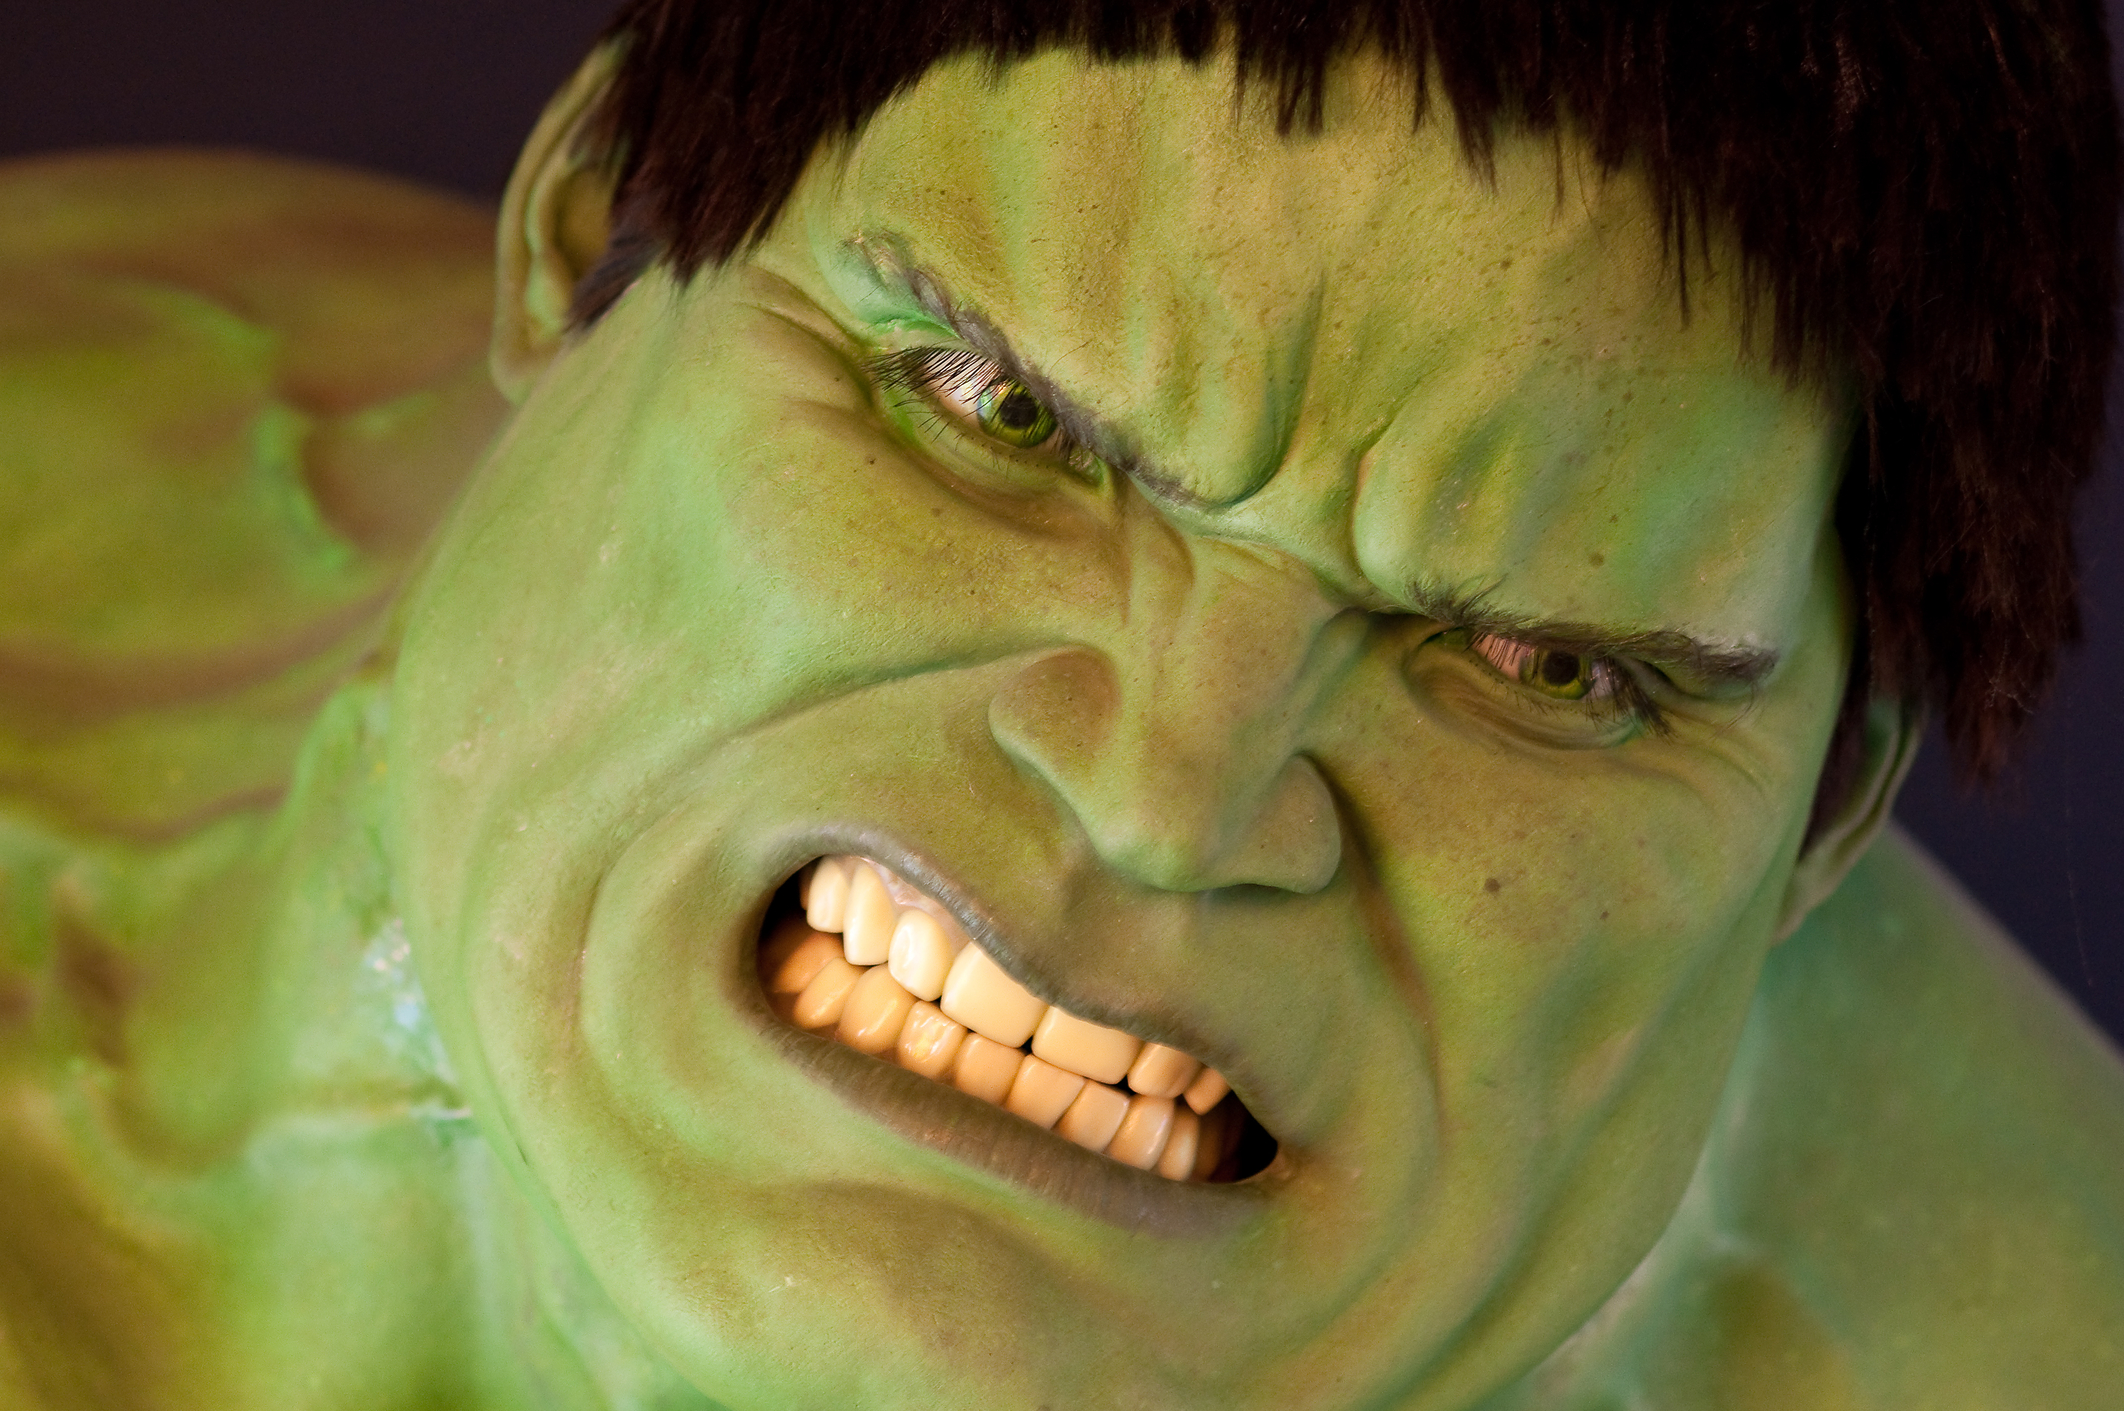 Incredible Hulk Quotes Angry Quotesgram